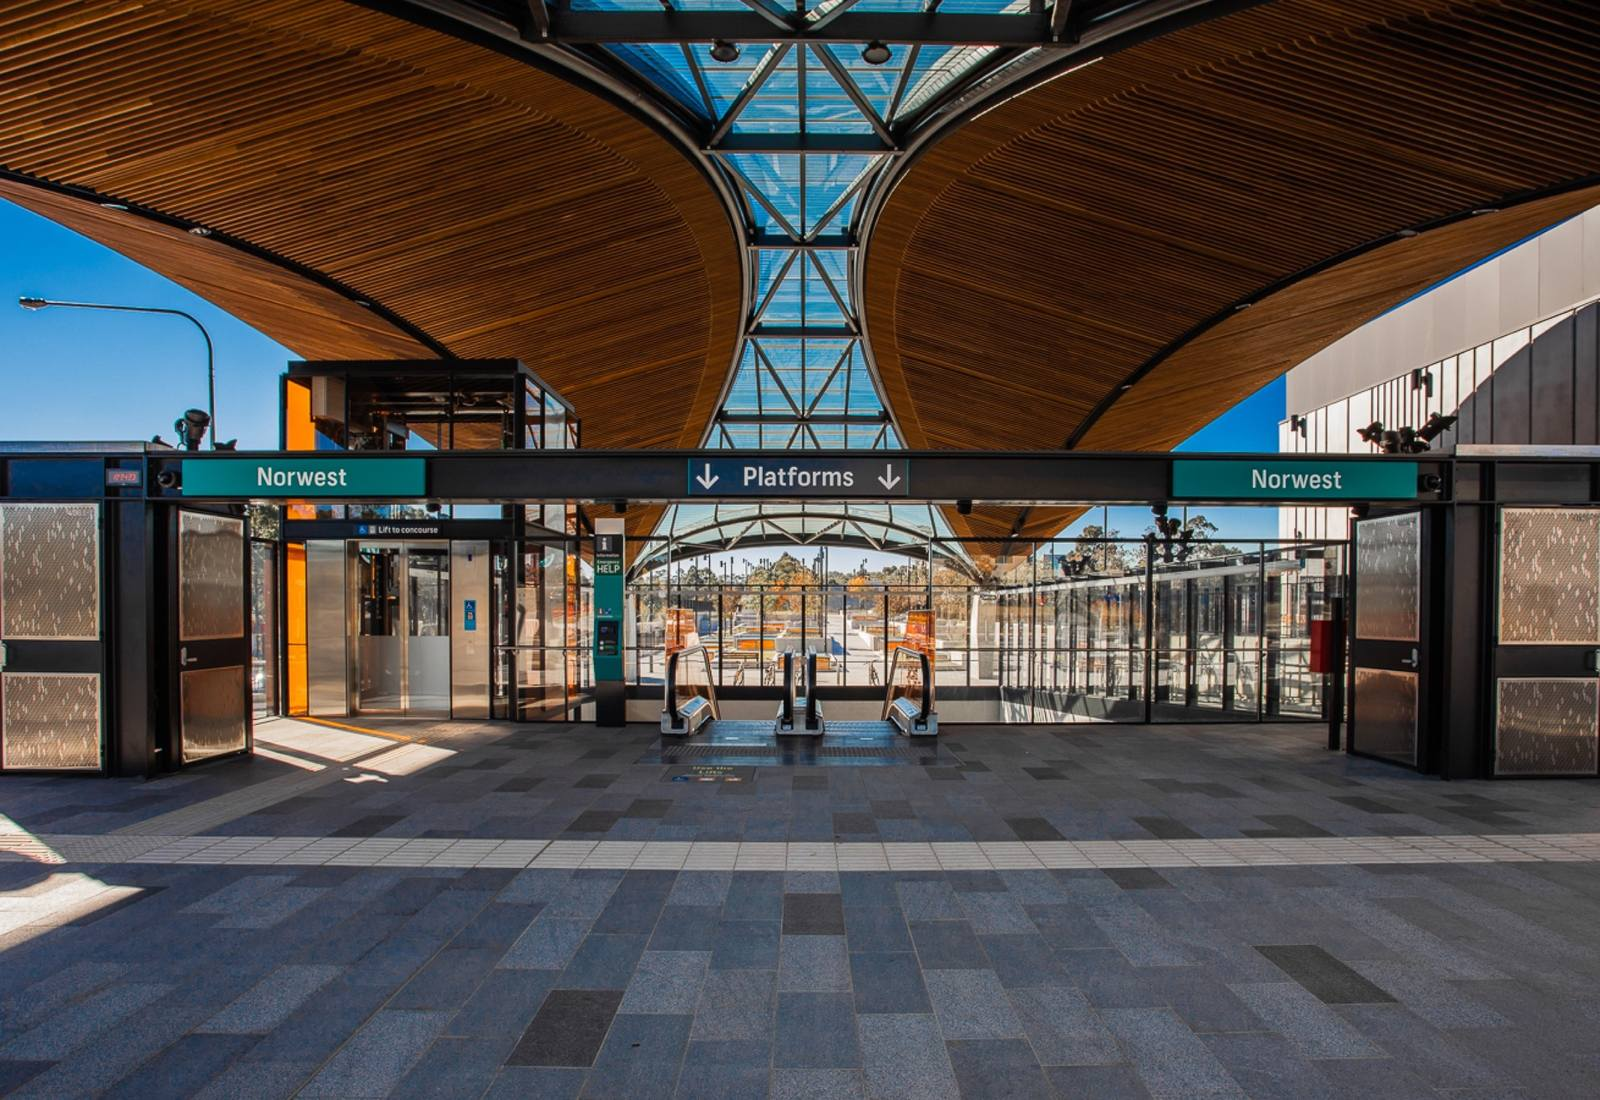 Sydney Metro: Grand Opening & First Commuters